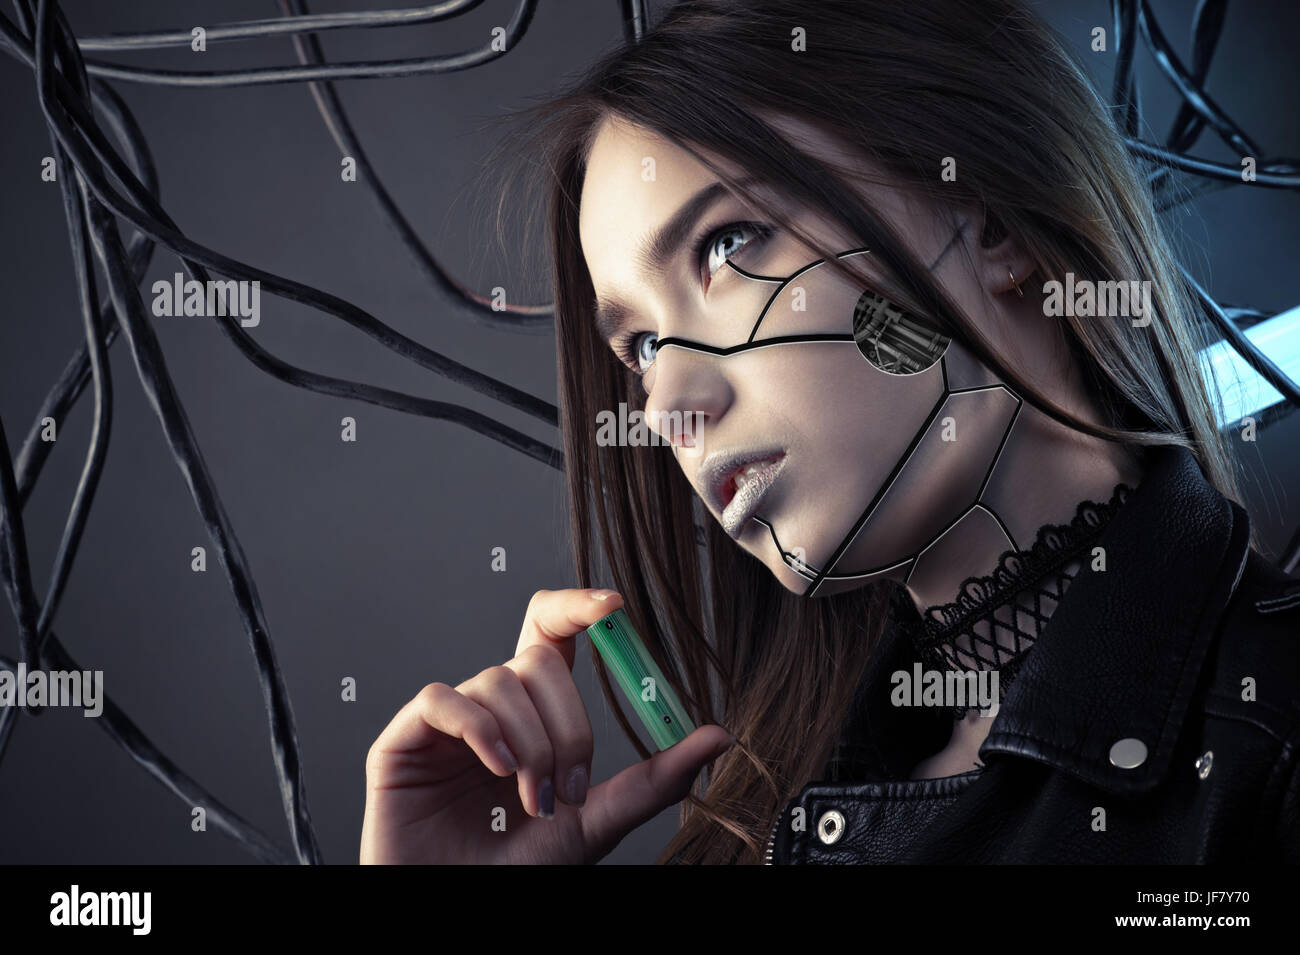 charming robot girl with cyberpunk style makeup holding battery in hand, concept energy saving - Stock Image